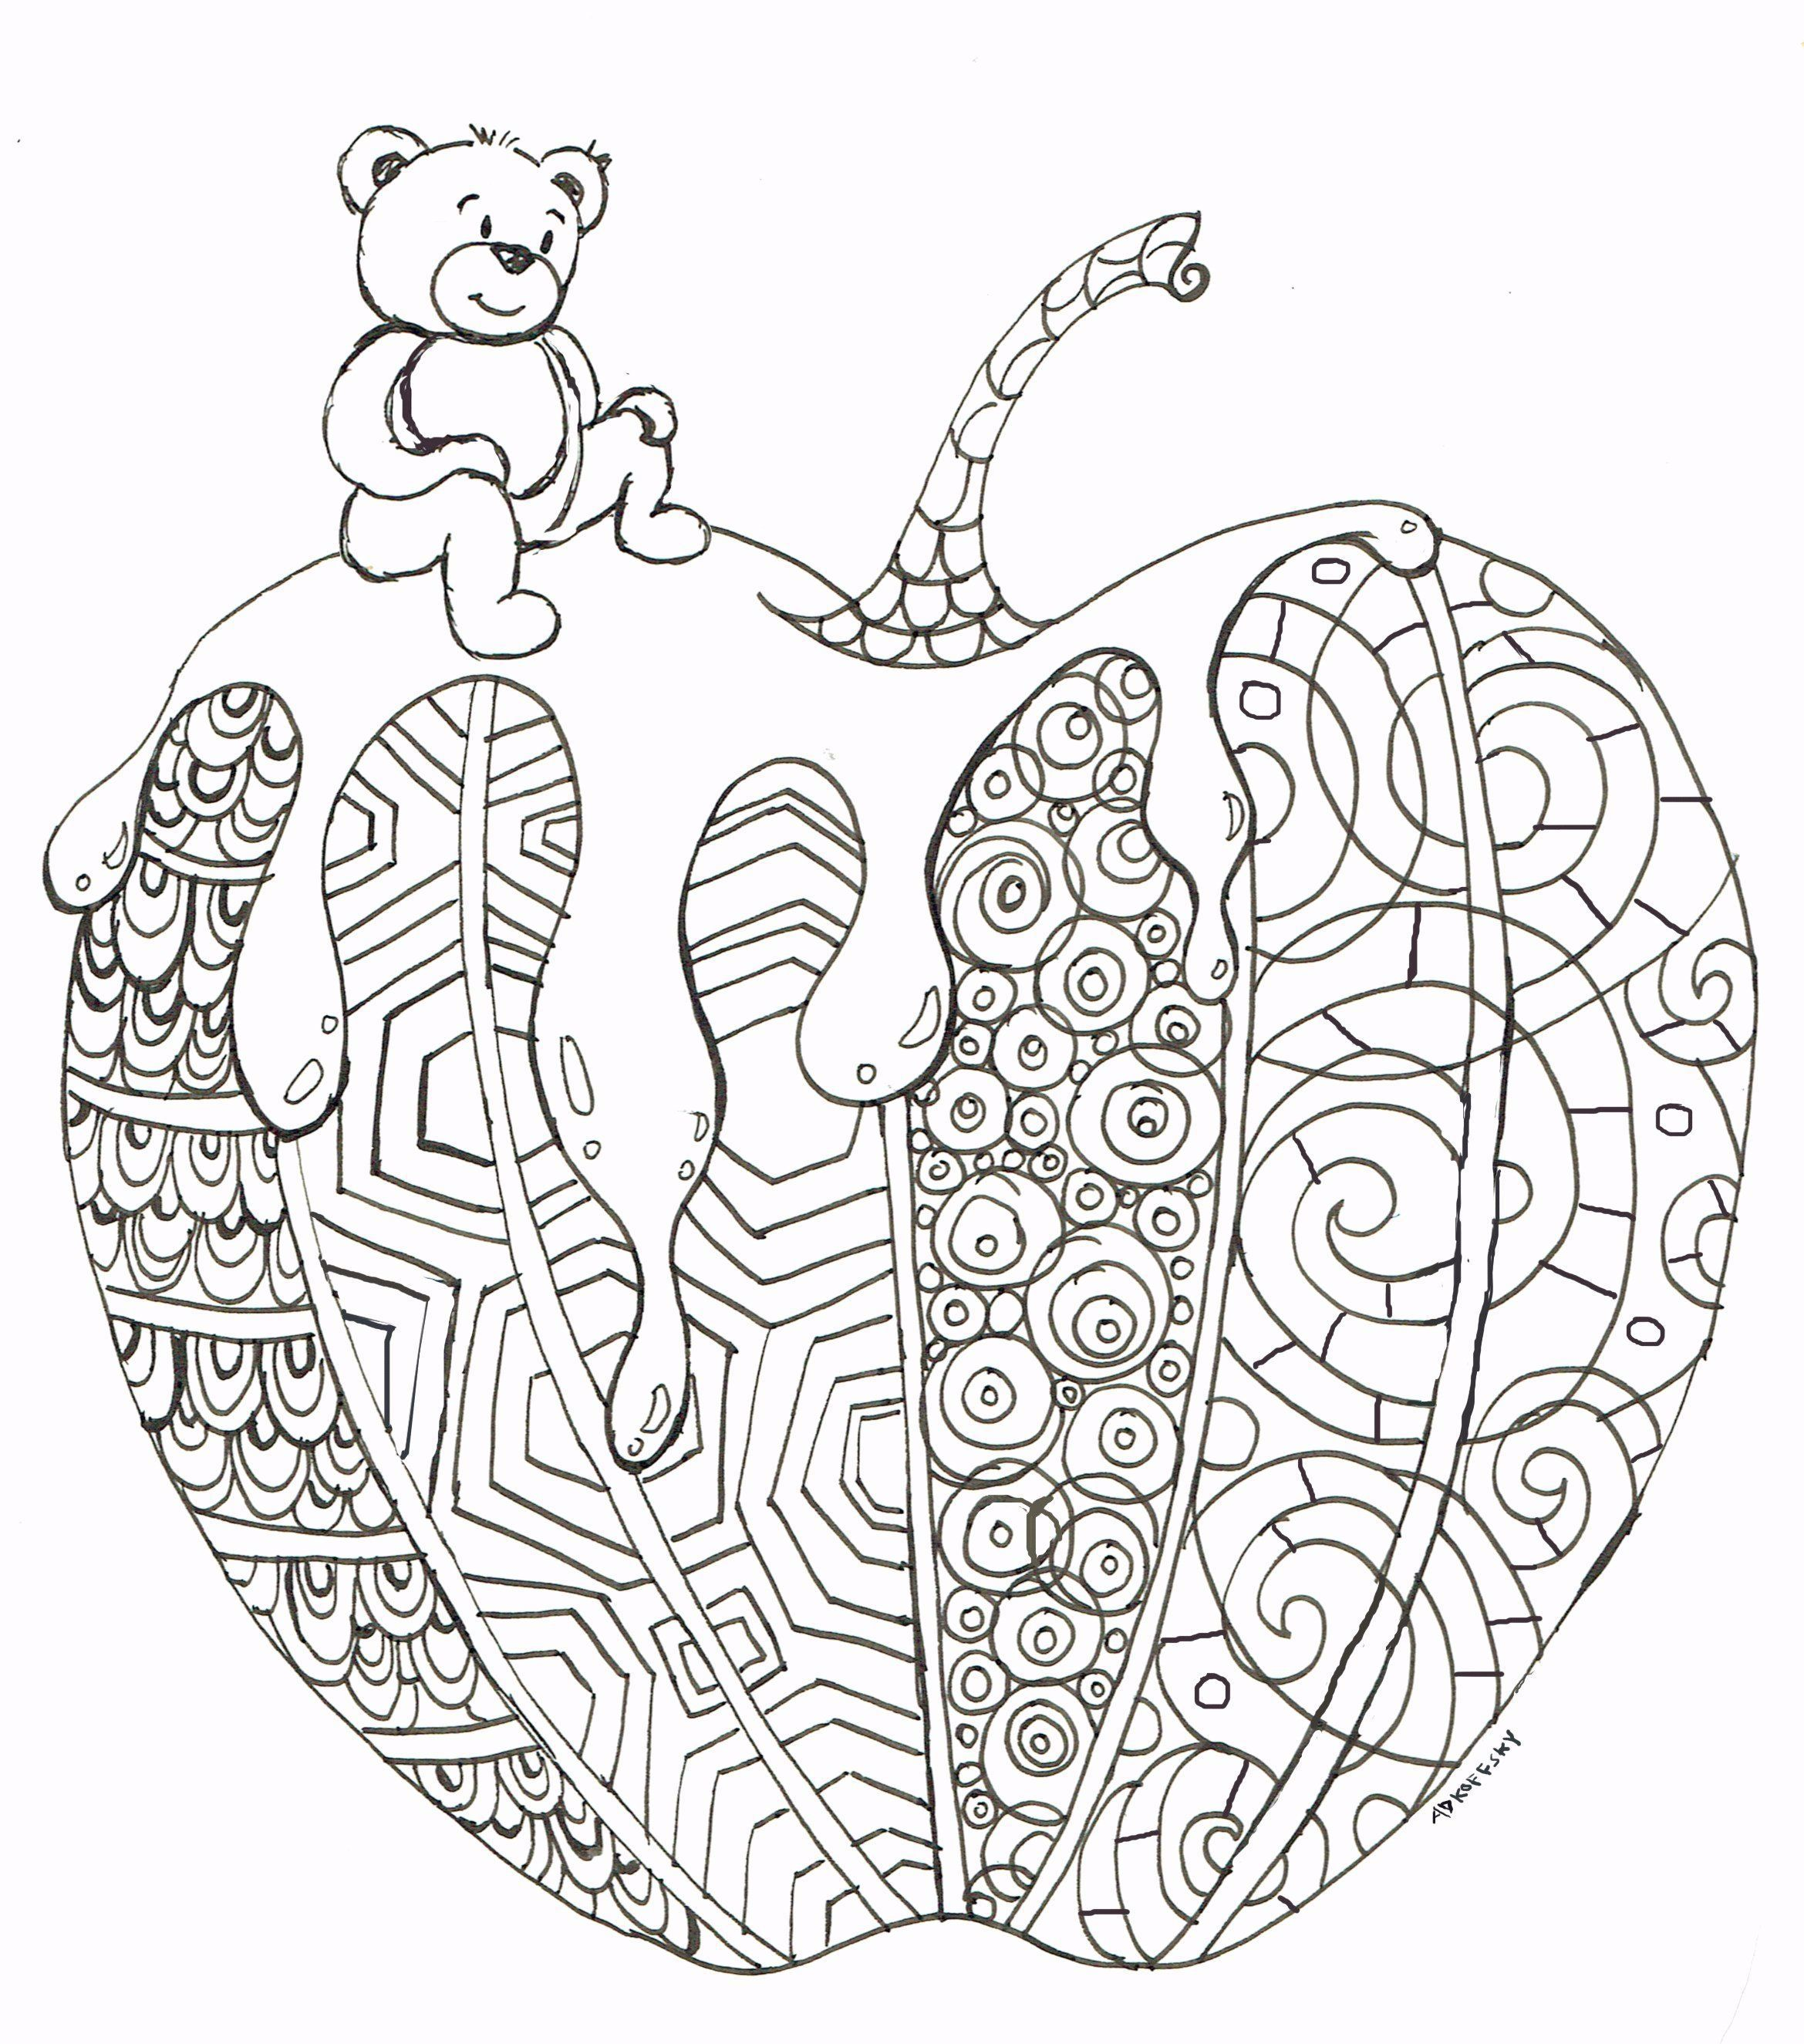 Rosh Hashanah Coloring Pages Printable Beautiful Rosh Hashanah Coloring Pages At Getcolorings Rosh Hashanah Crafts Apple Coloring Pages Rosh Hashana Crafts